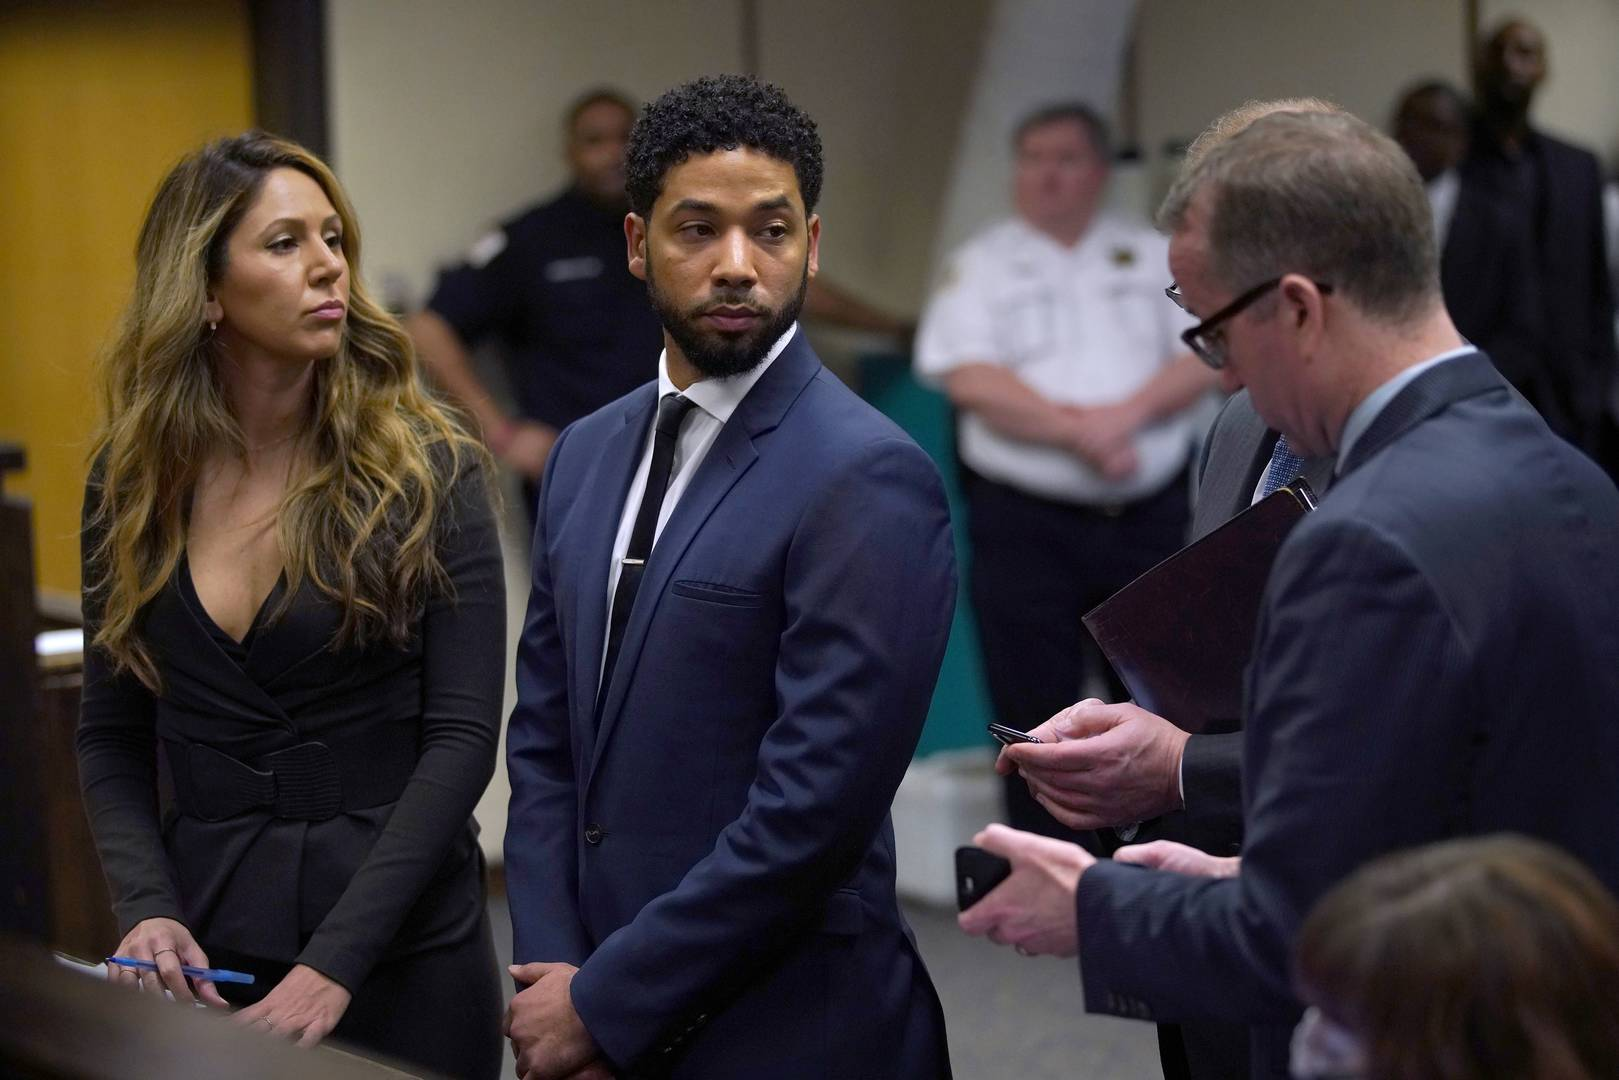 Newly released texts, emails show behind-the-scenes of Smollett fallout